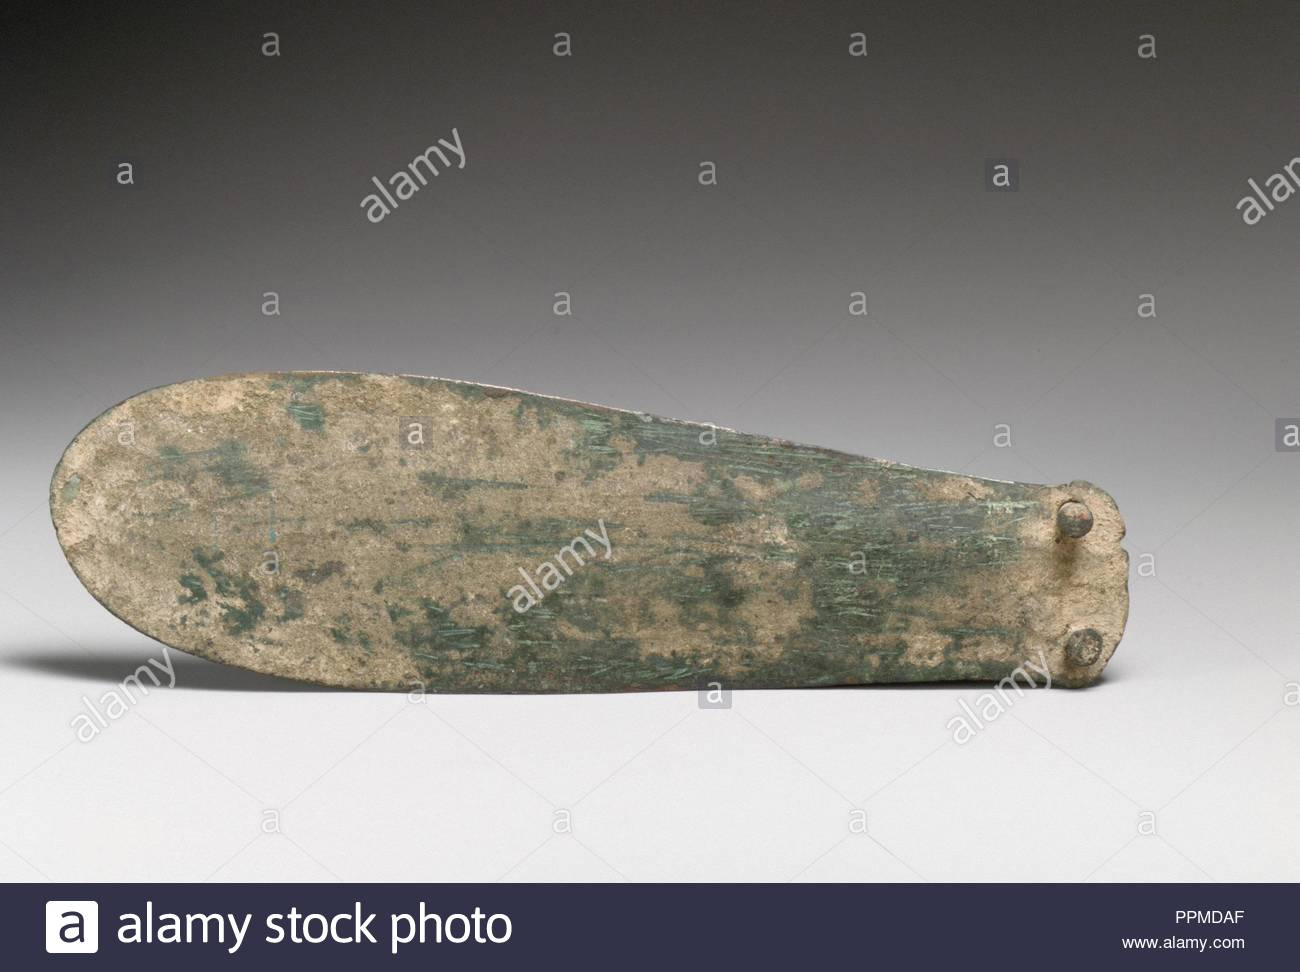 Bronze spatulate knife, Late Minoan I, ca. 1600–1450 B.C., Minoan, Bronze, L. 8 3/8 in. (21.3 cm), Bronzes, Dagger blade with two rivets. - Stock Image